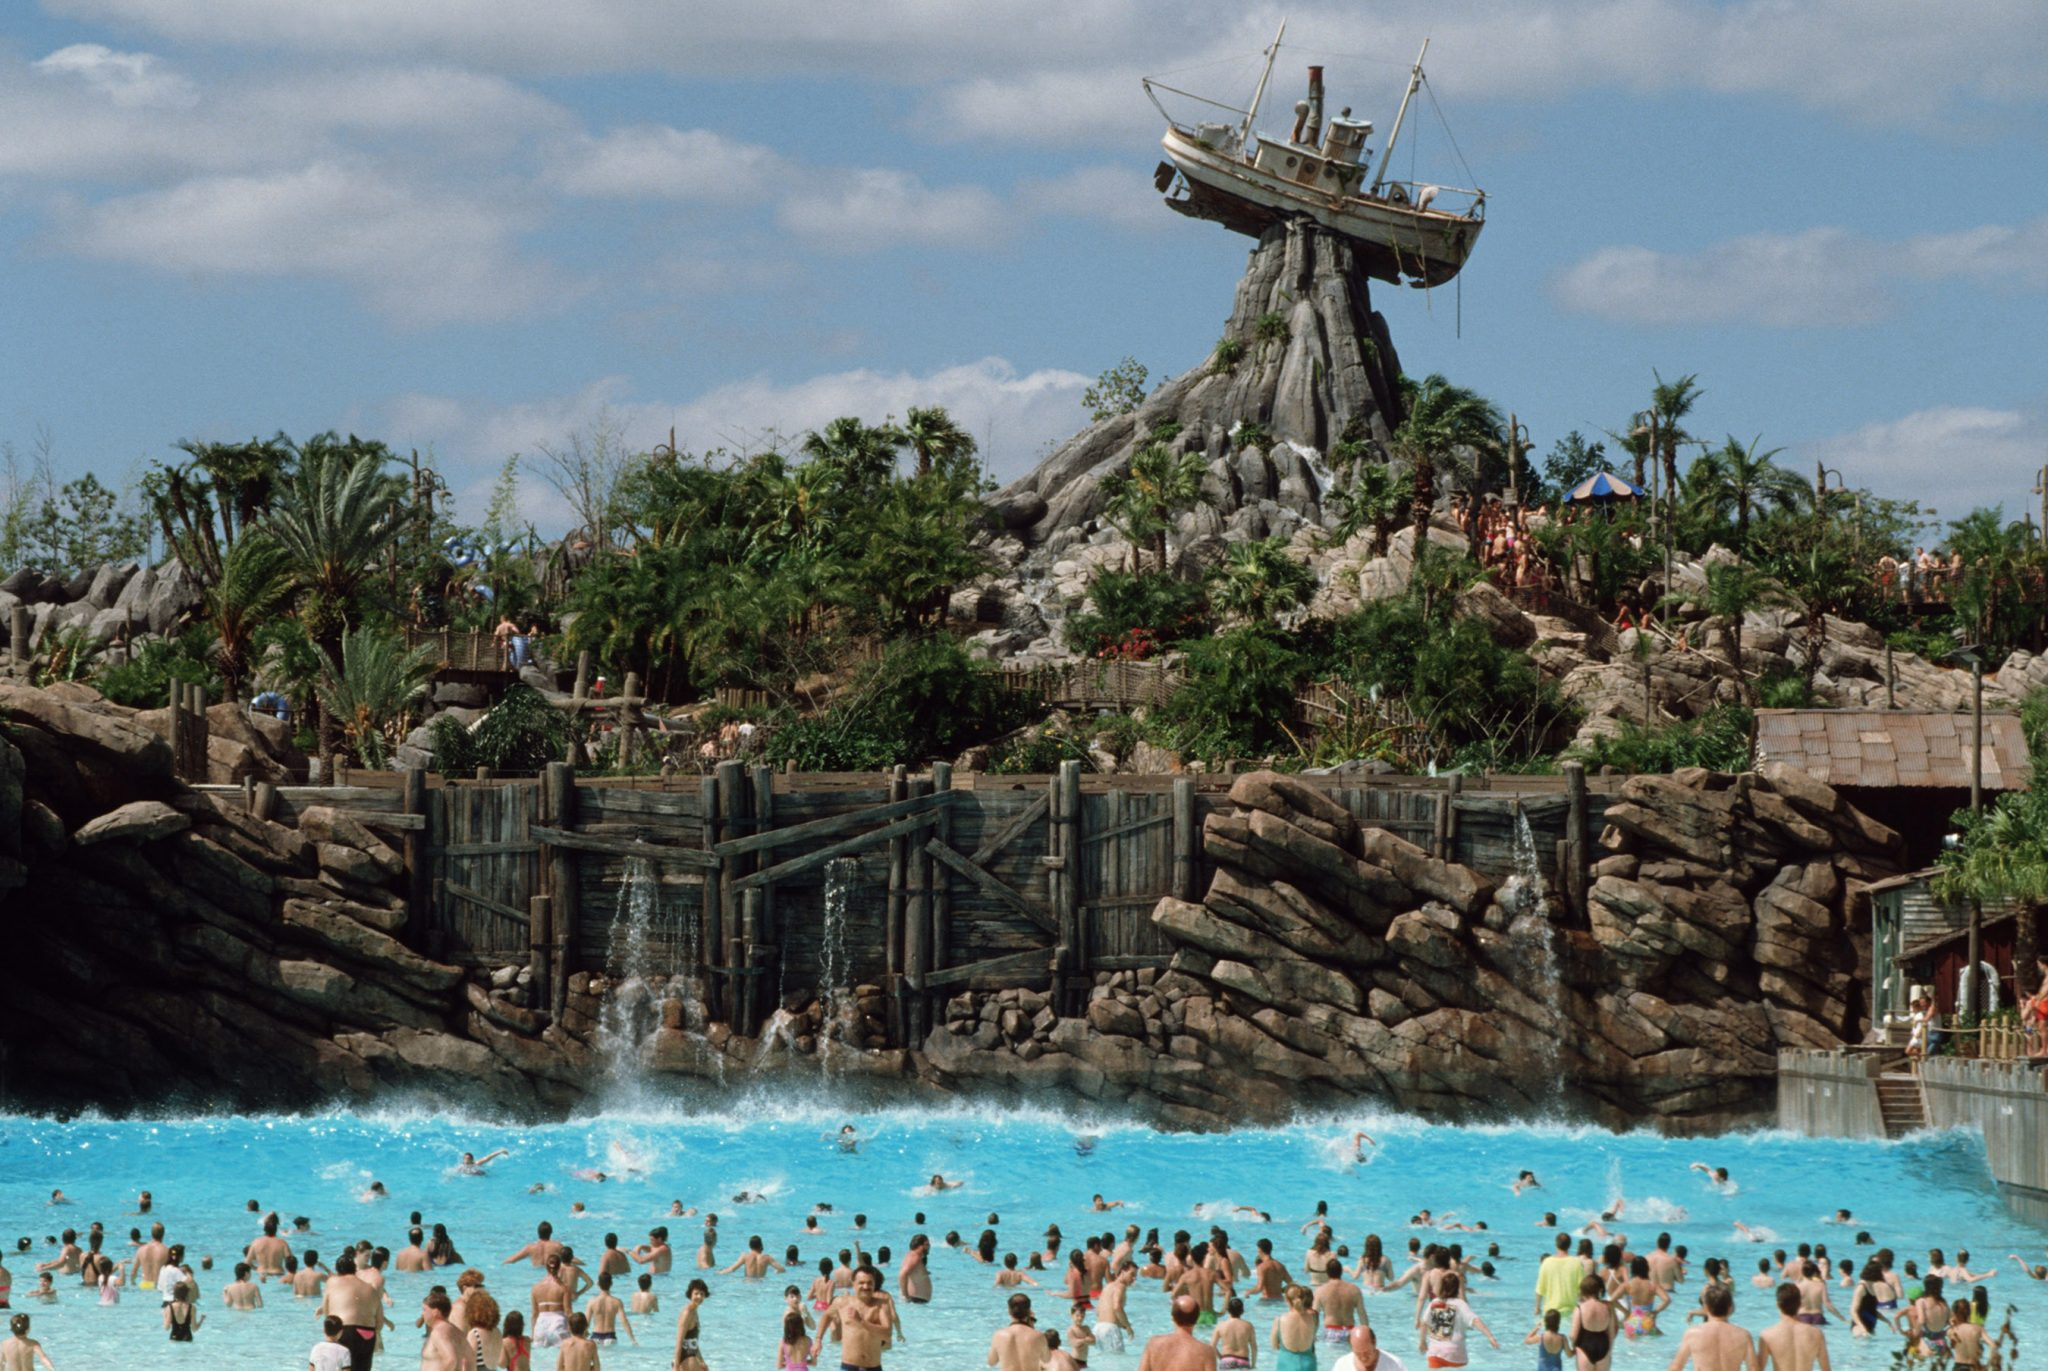 Sunny skies make swimming possible year-round at Typhoon Lagoon at Walt Disney World Resort. The 53-acre themed water park provides plenty of splashing-good fun with water flumes and slides, raft rides, a childrenÕs play area and an inner tube-filled creek that encircles the entire park. (Disney)